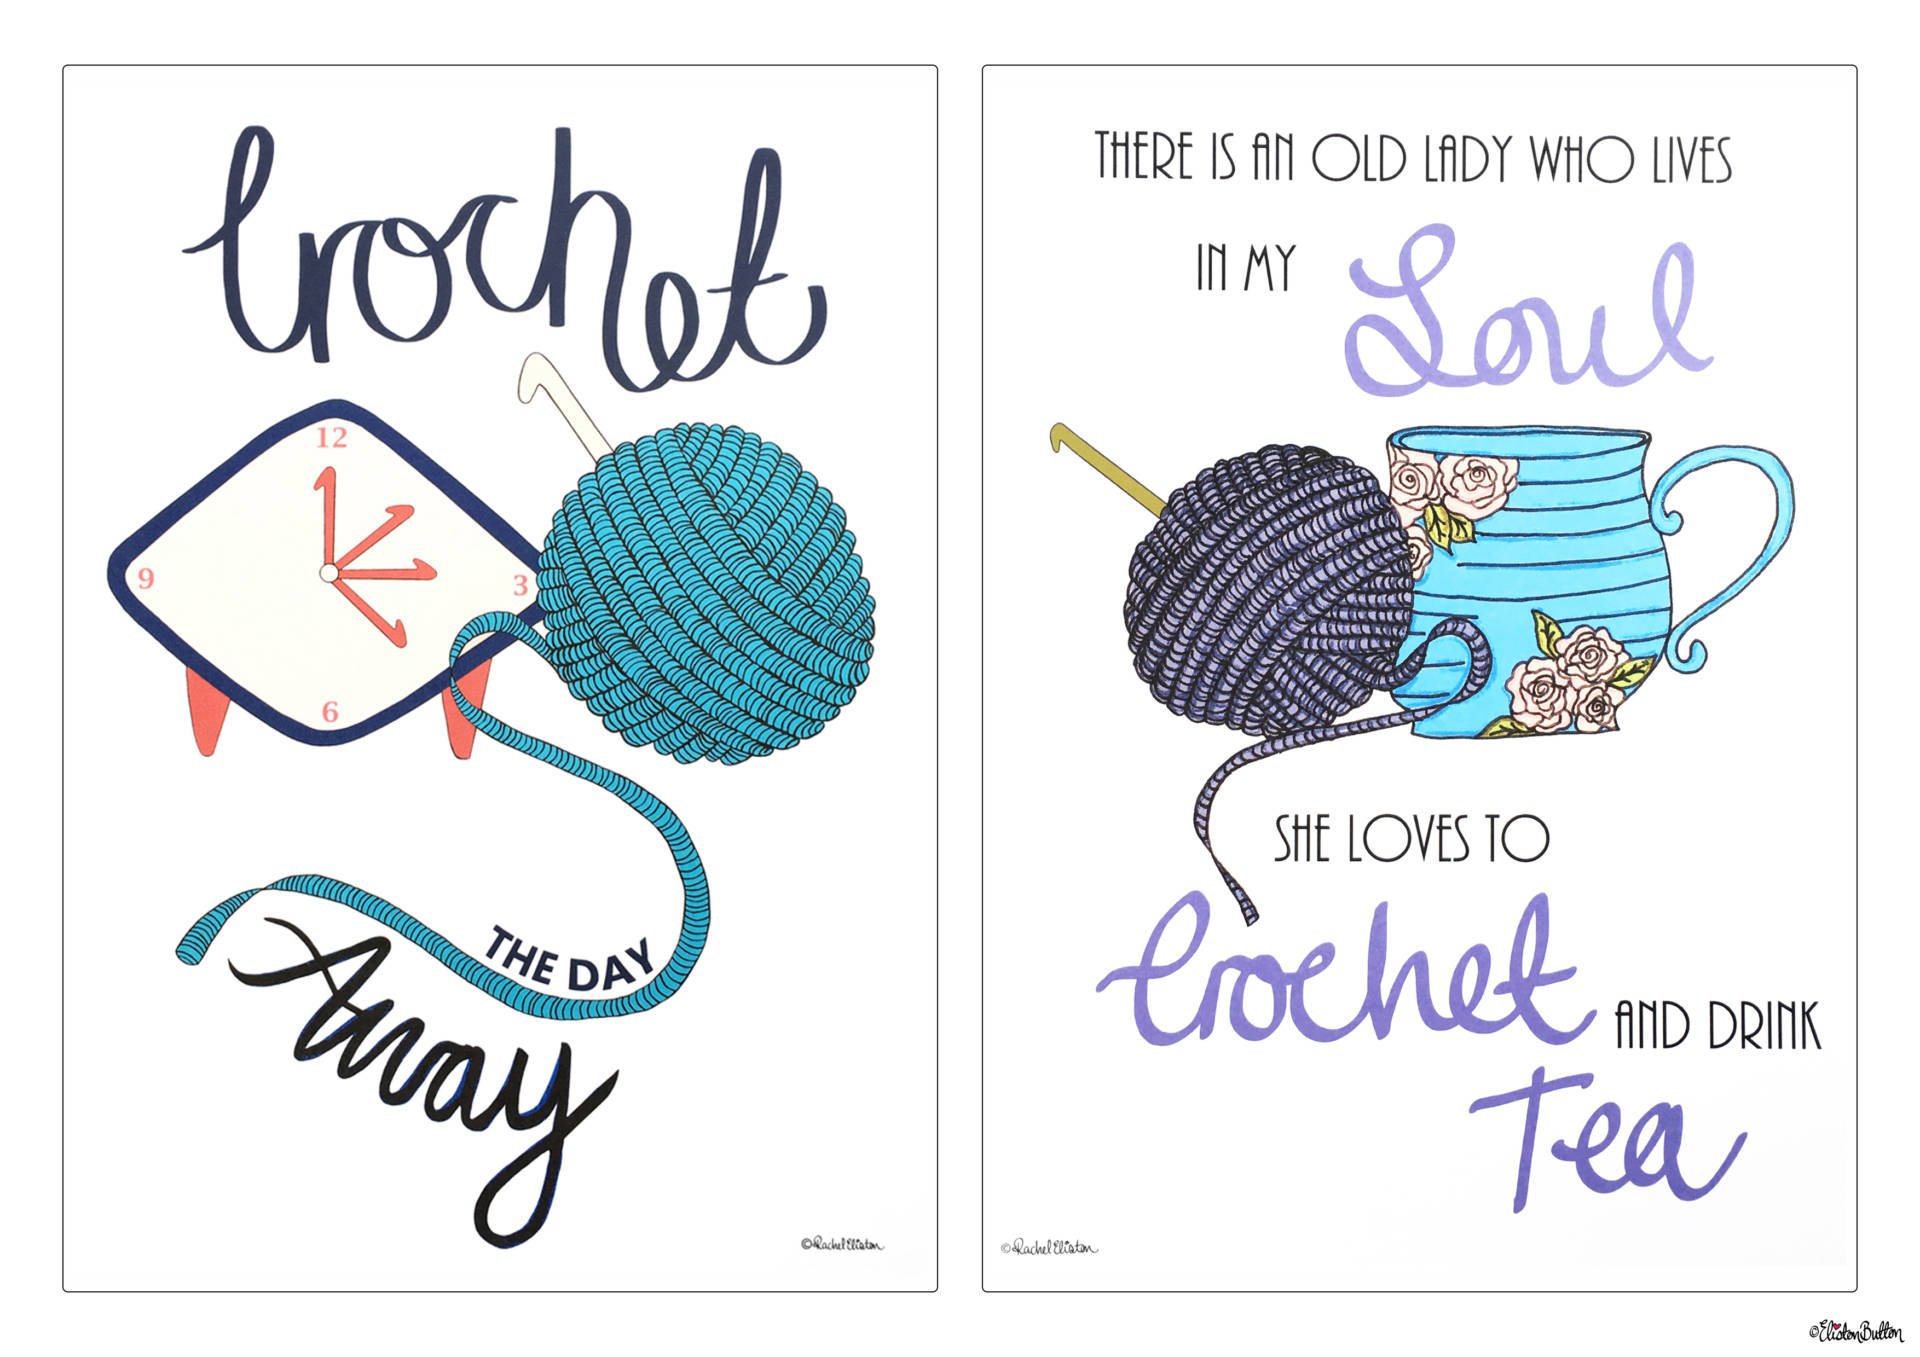 Crochet the Day Away and Crochet and Drink Tea Quote Prints by Eliston Button - Christmas Gift Guide, Last Postage Dates and a Present for You! at www.elistonbutton.com - Eliston Button - That Crafty Kid – Art, Design, Craft & Adventure.